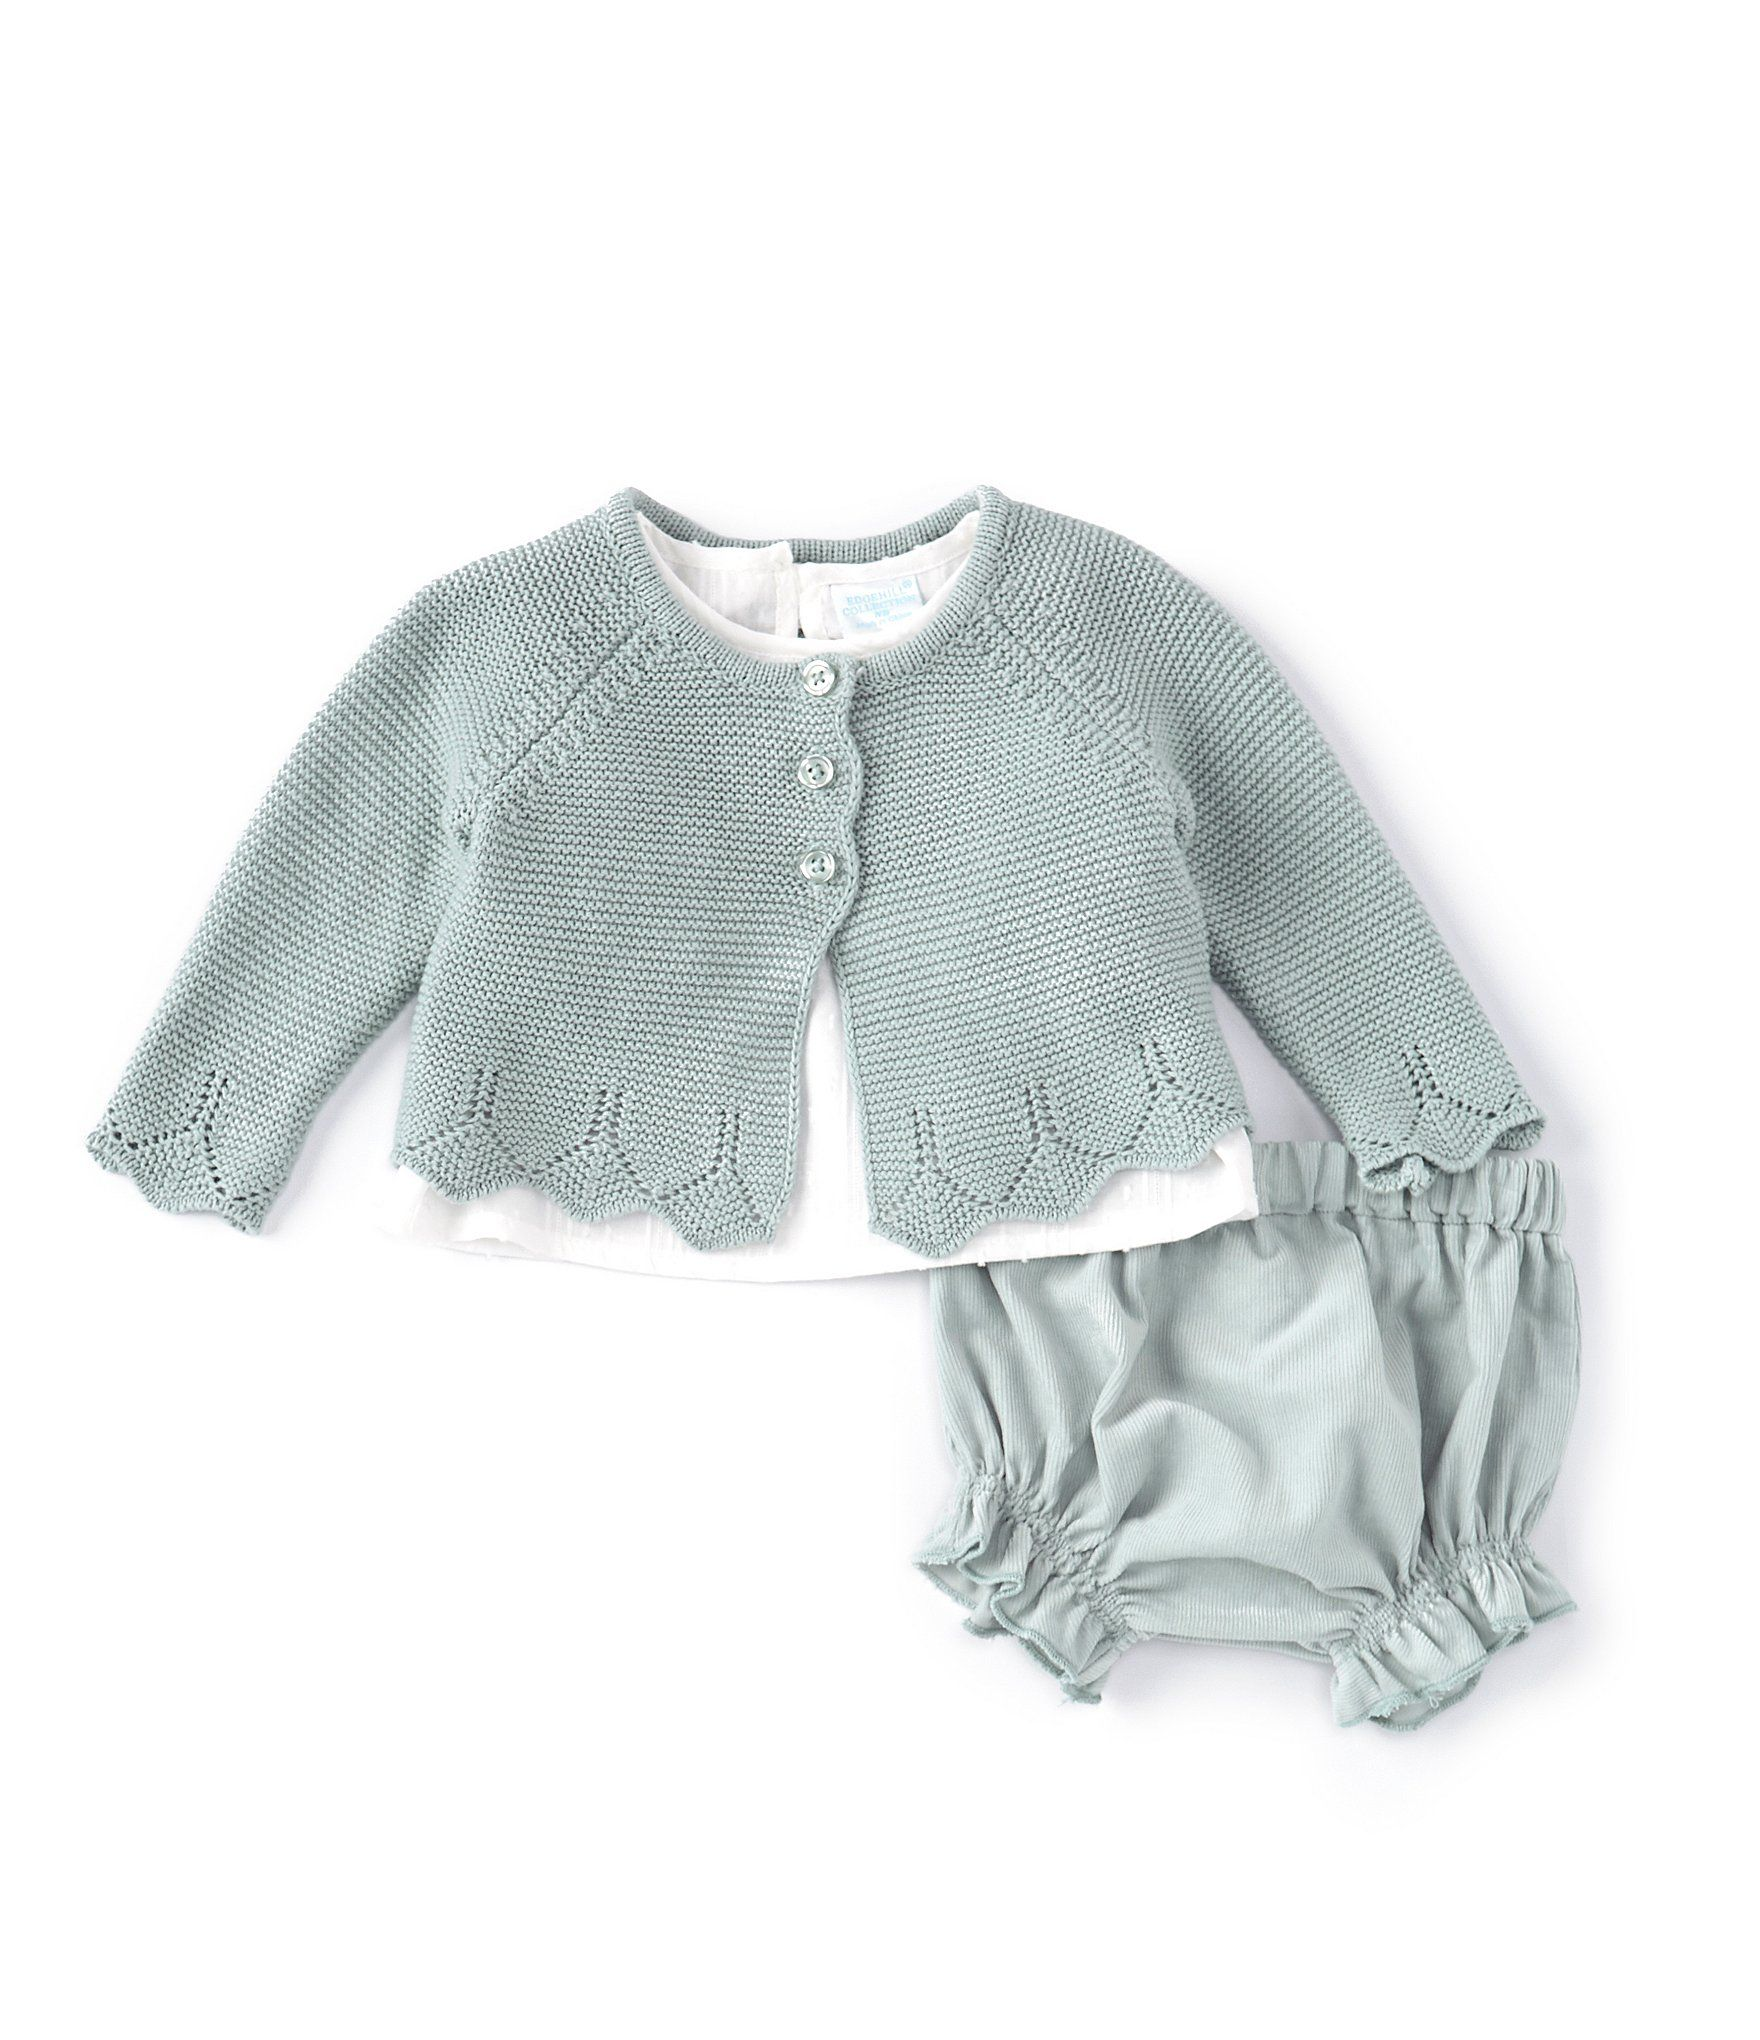 Photo of Edgehill Collection Baby Girls Newborn-6 Months Sweater Cardigan & Top Set | Dillard's